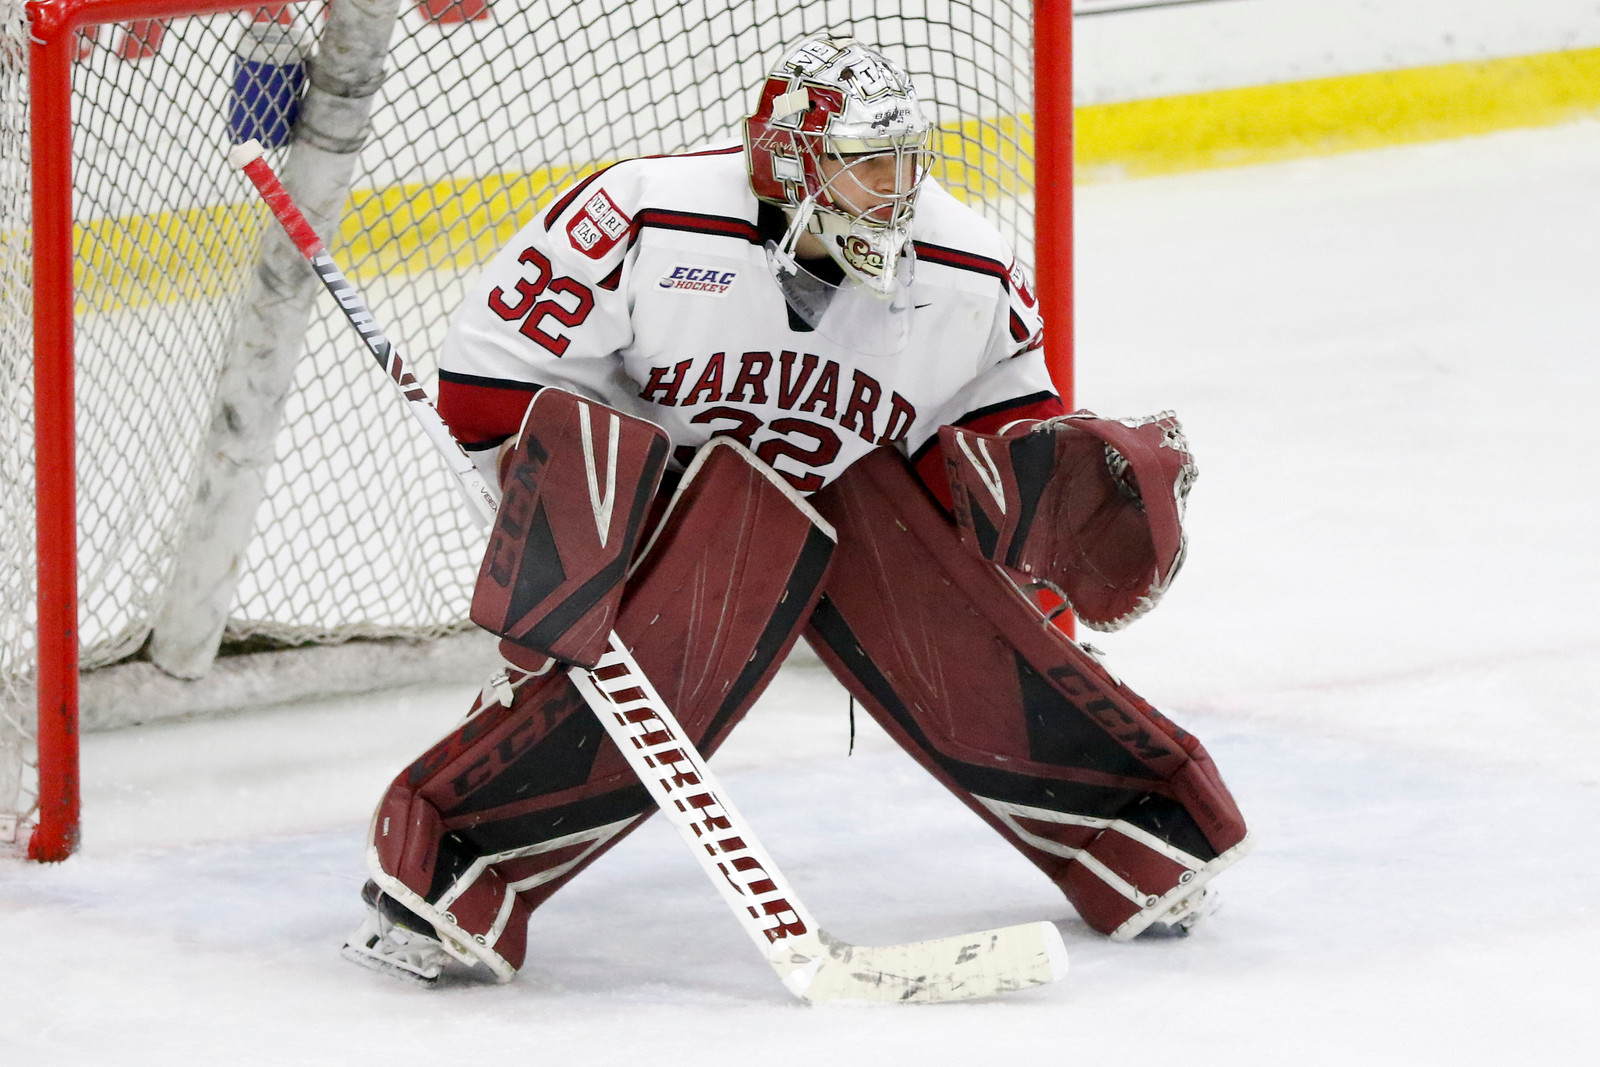 Junior Cameron Gornet has stepped up to fill the void in the crease left by an injured Michael Lackey. His play has maintained consistency for the Crimson, preventing the season from imploding down the stretch without the starting net-minder.